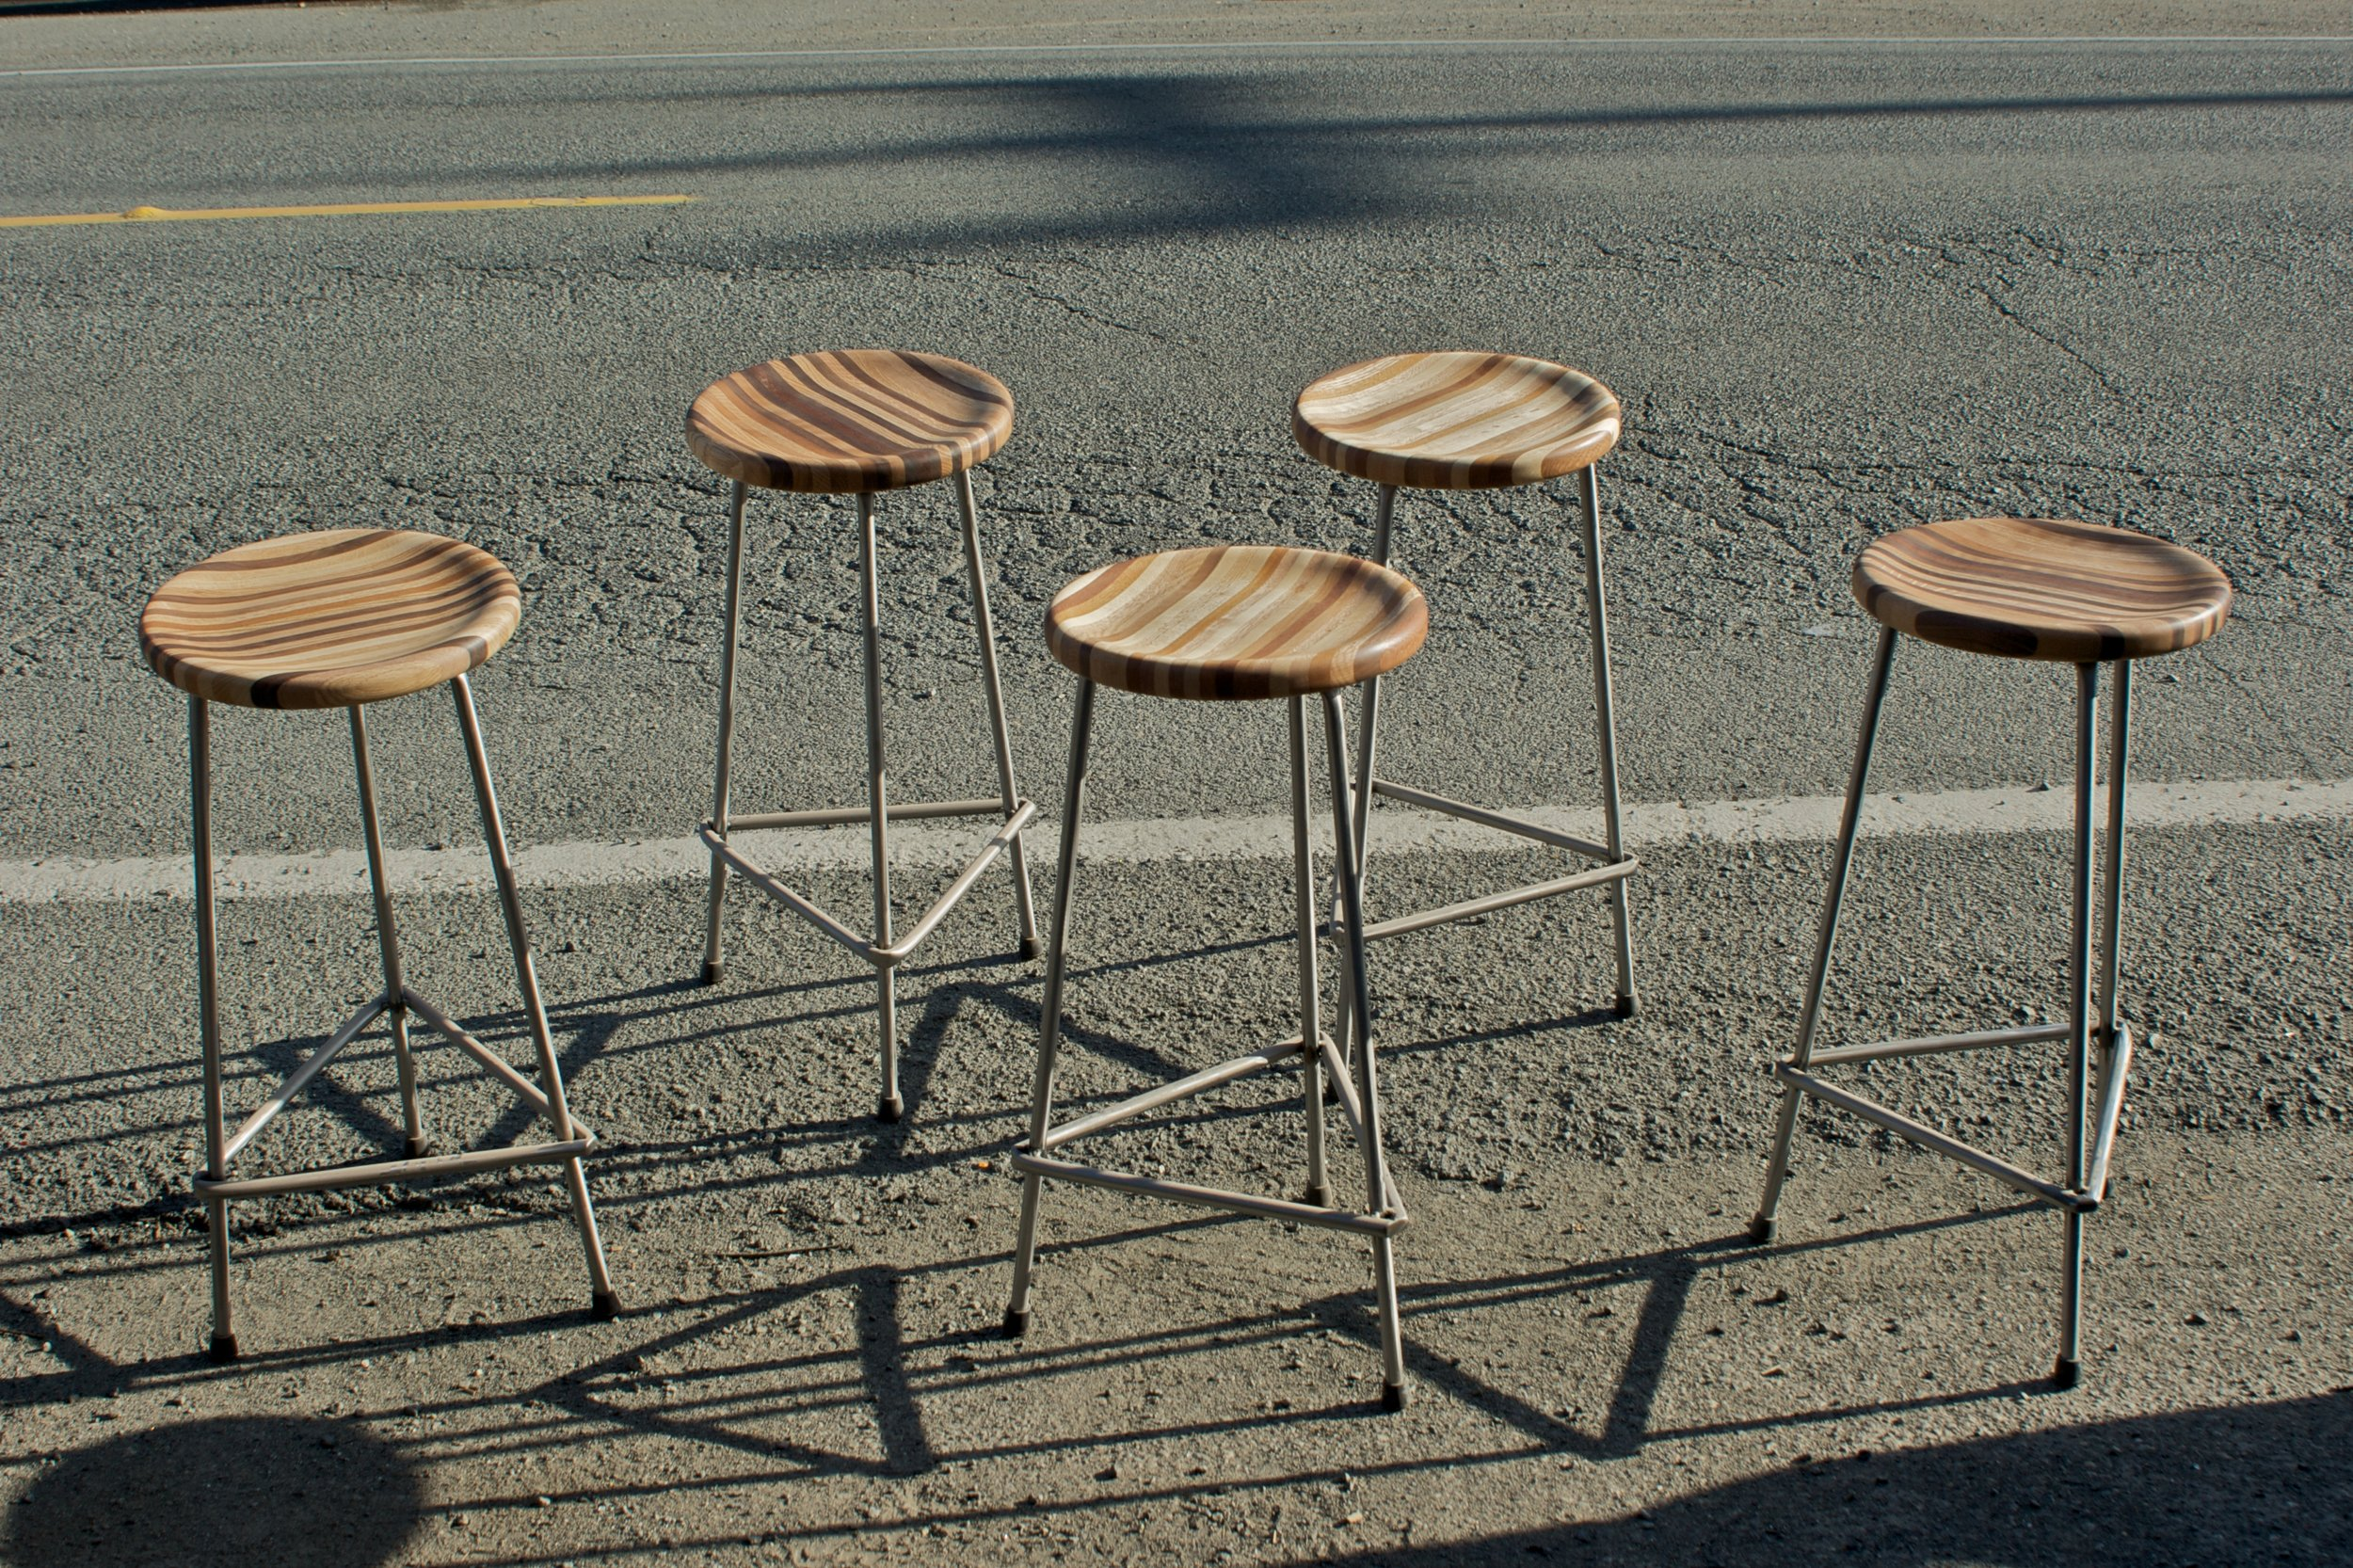 Steel-based Scrap Stools